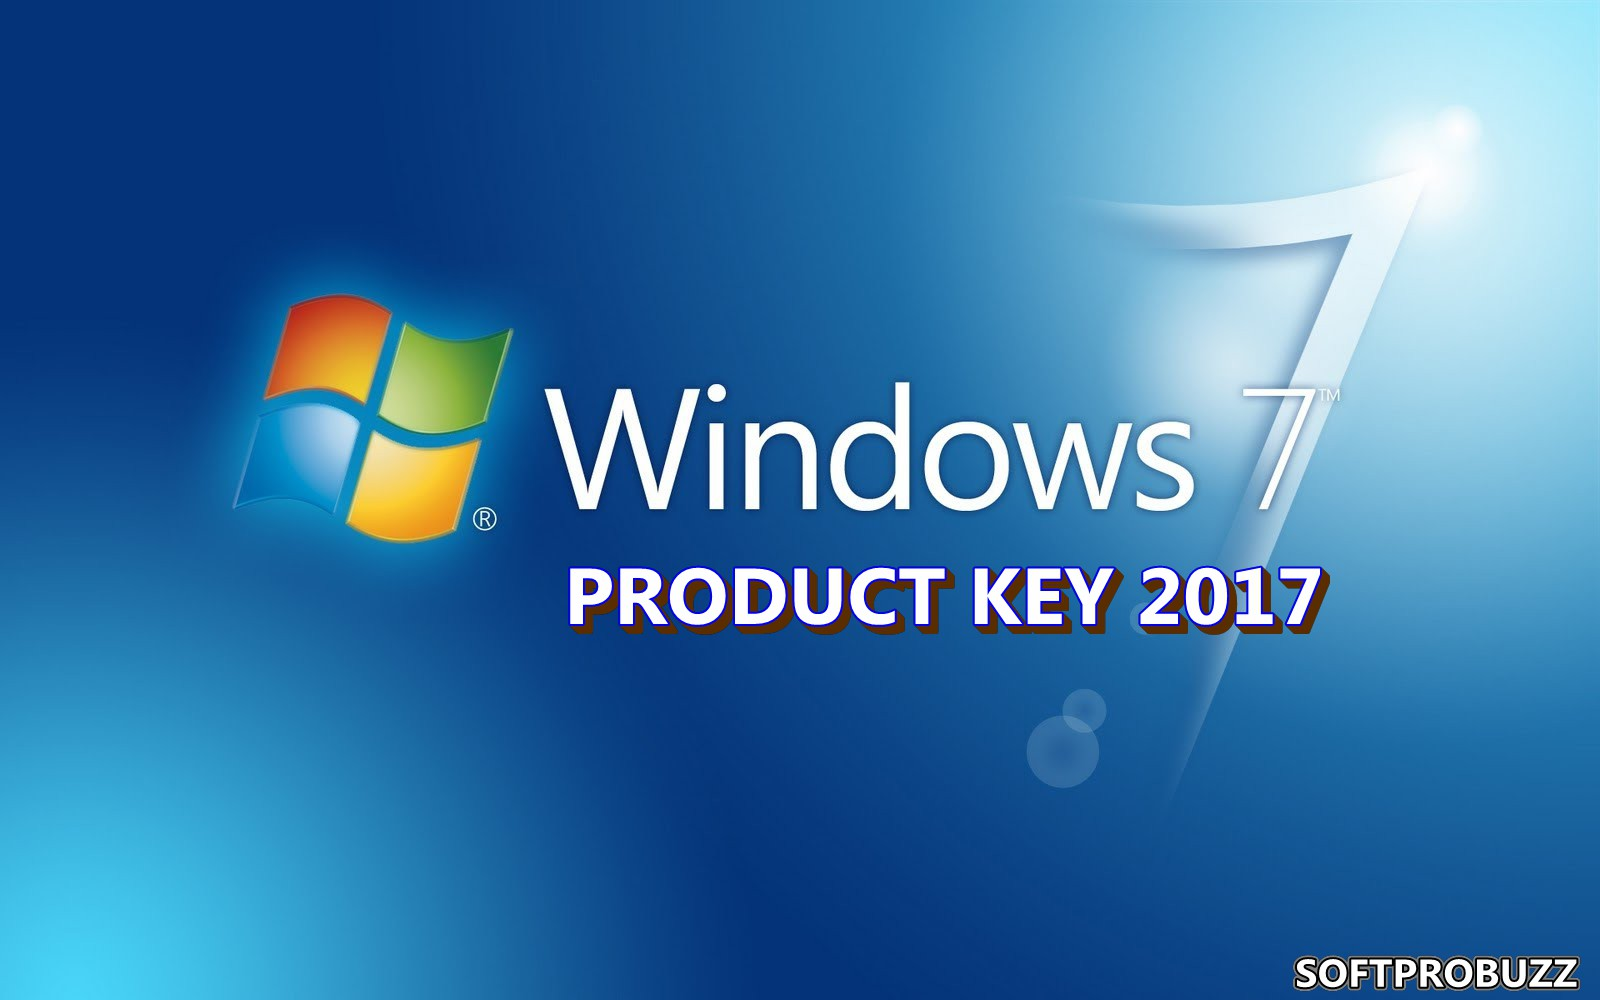 windows 7 ultimate product key 2017